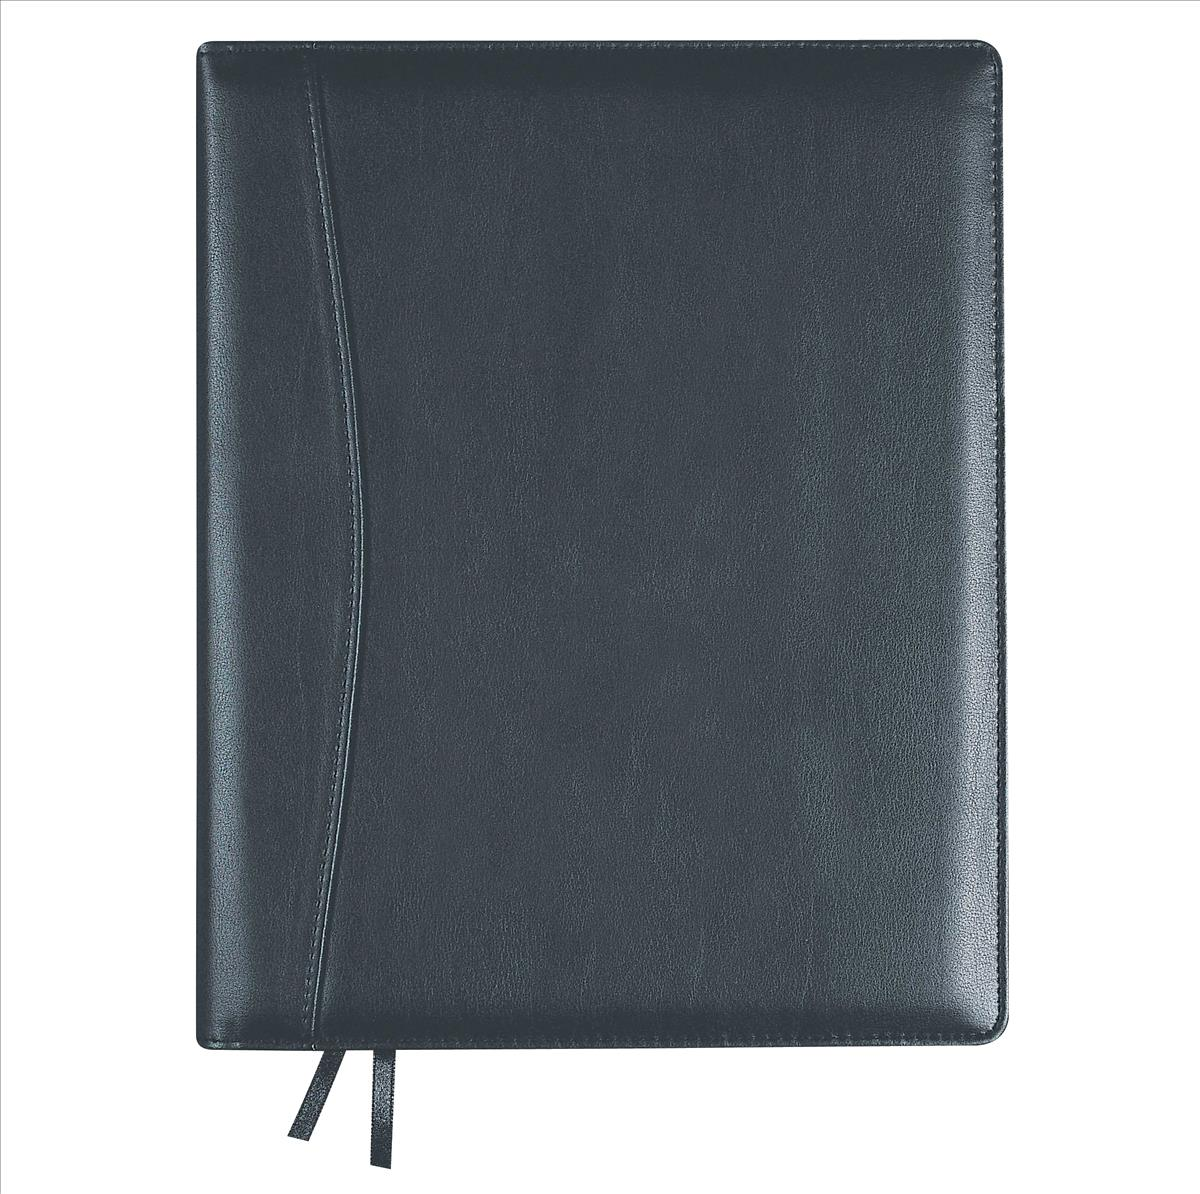 Collins Elite Executive Week to View 2016 Diary Black (Pack of 1) 1130V